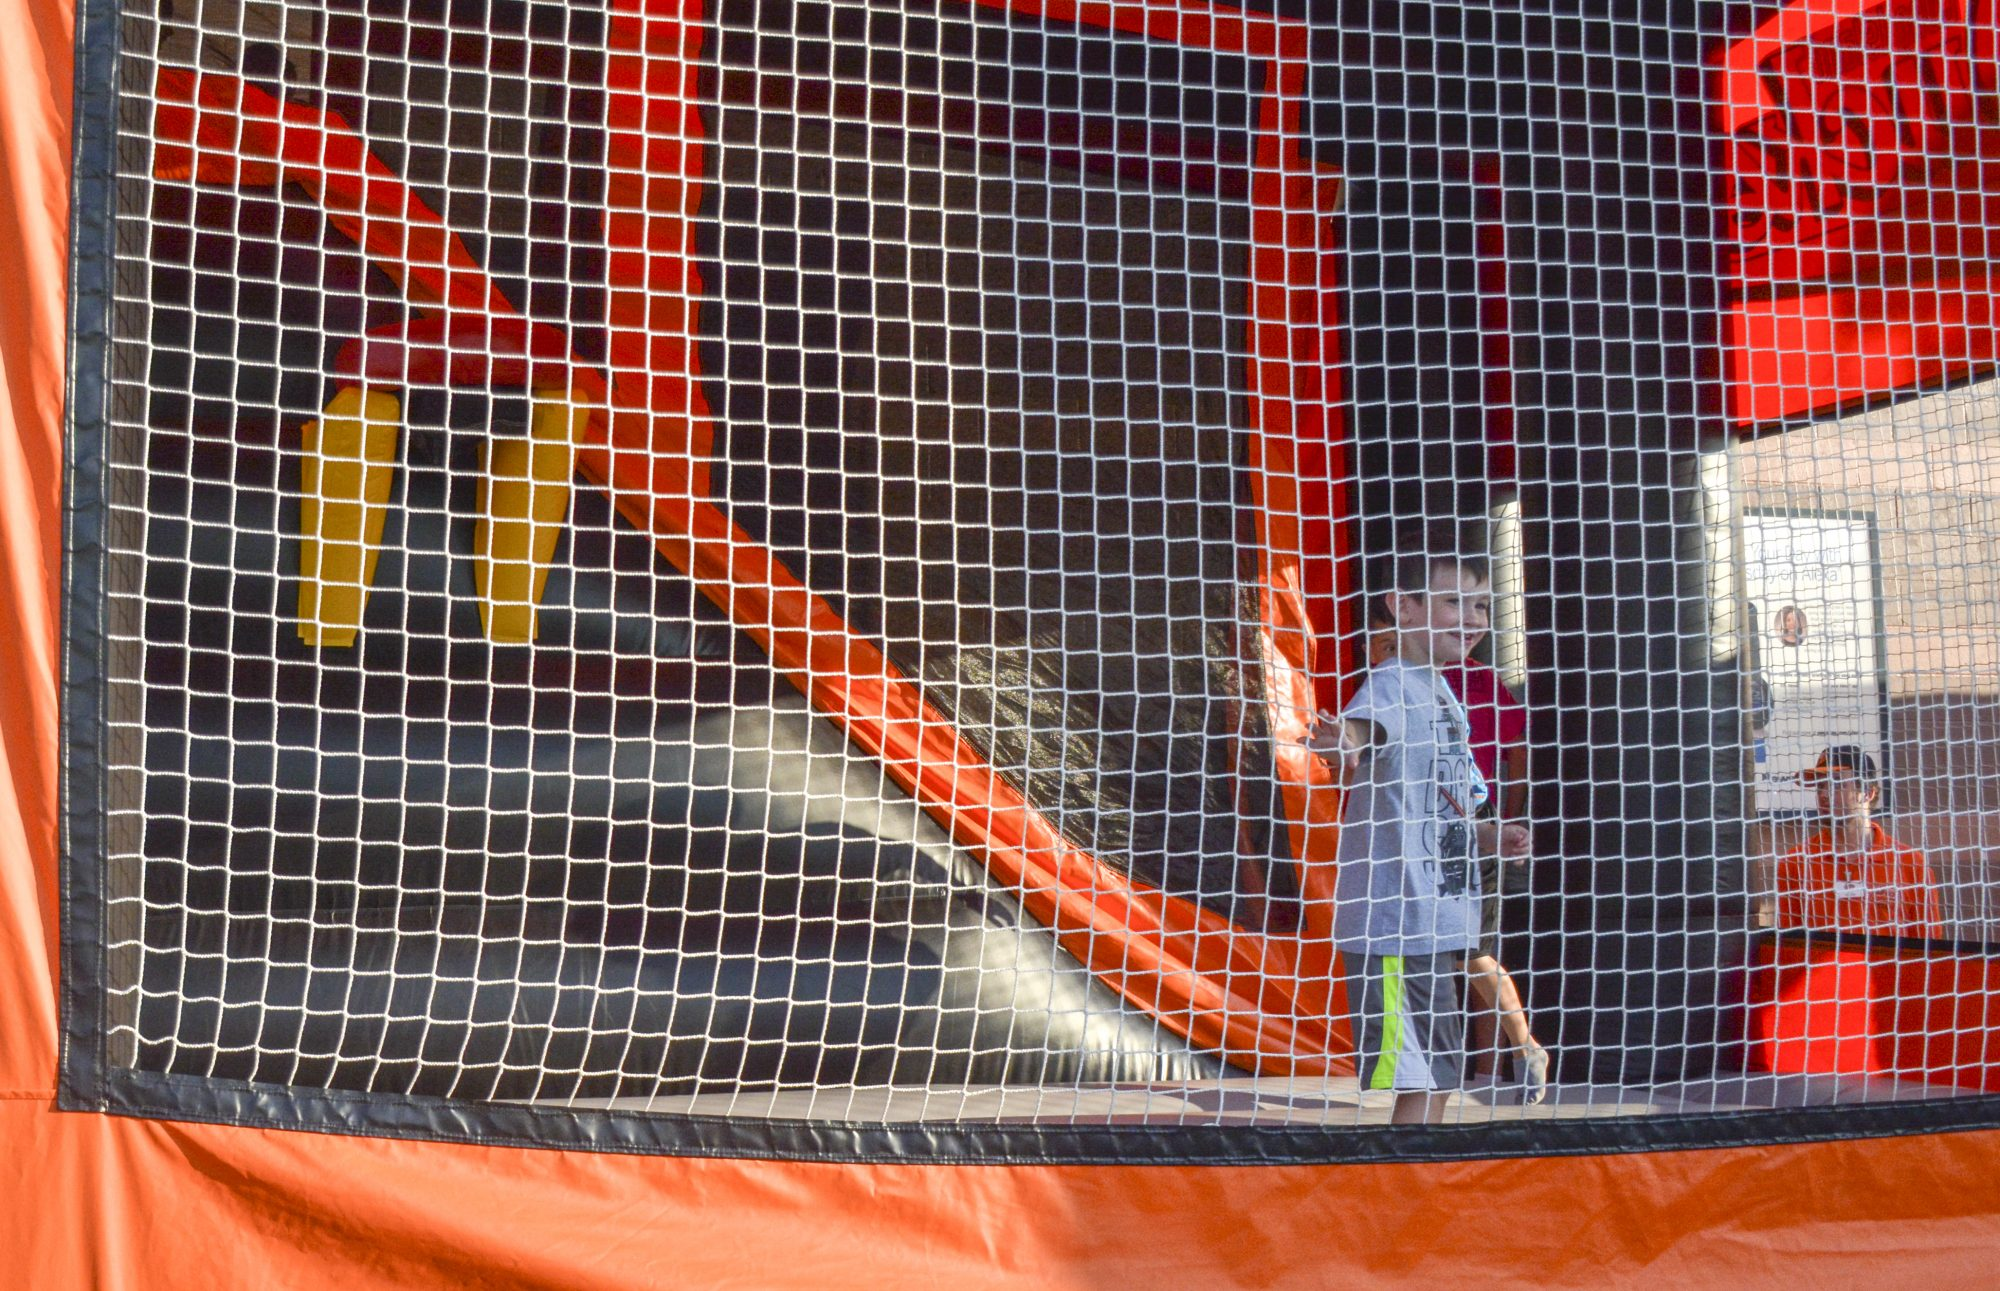 A young Ducks fan plays in the bouncy house at the Long Island Ducks game on Wednesday, July 24, 2019. At Bethpage Ballpark, a new kids zone was created to entertain children. Photo by Olivia Mintz.